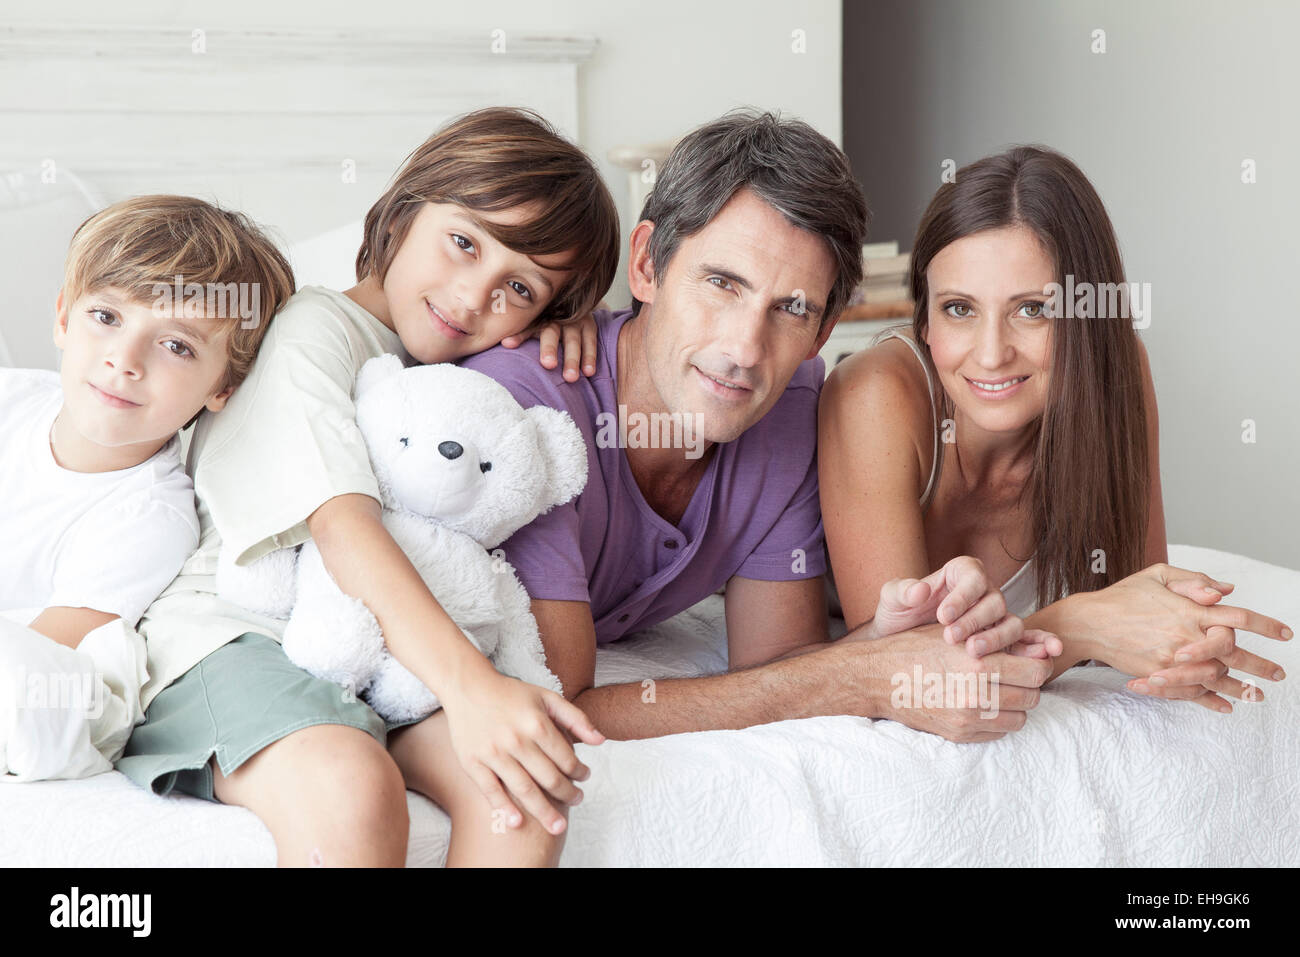 Parents and young sons relaxing together on bed, portrait - Stock Image